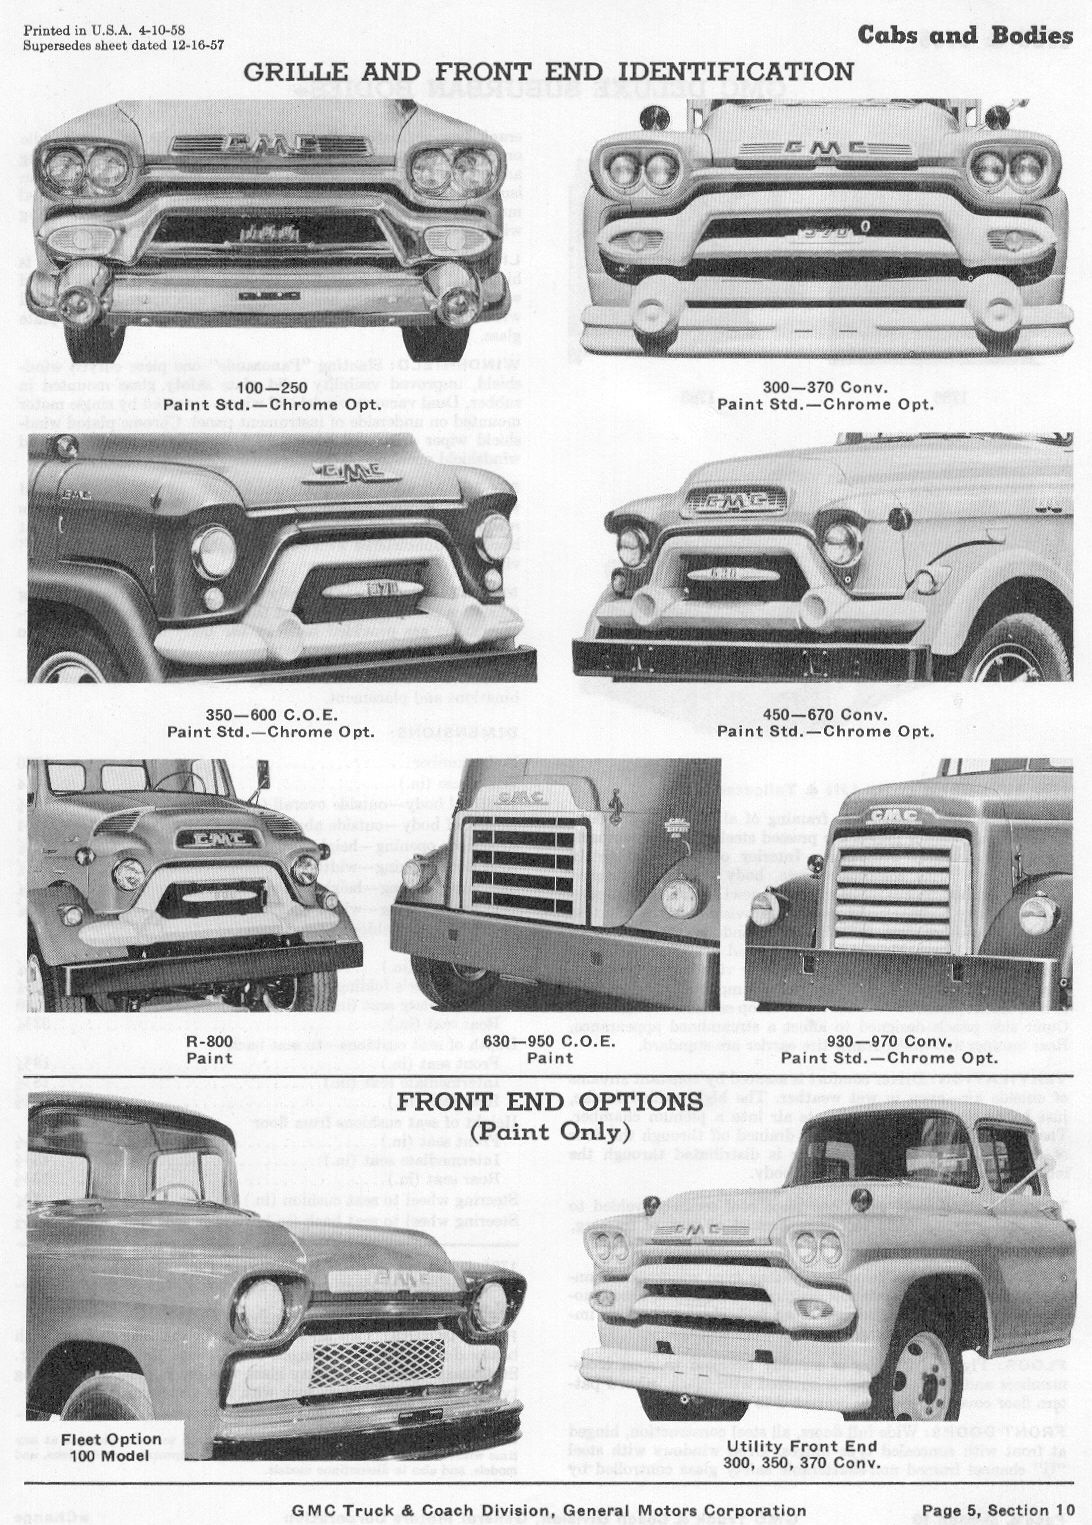 1958 Gmc Advertisements 58 Gmc Fleet Option Truck The H A M B